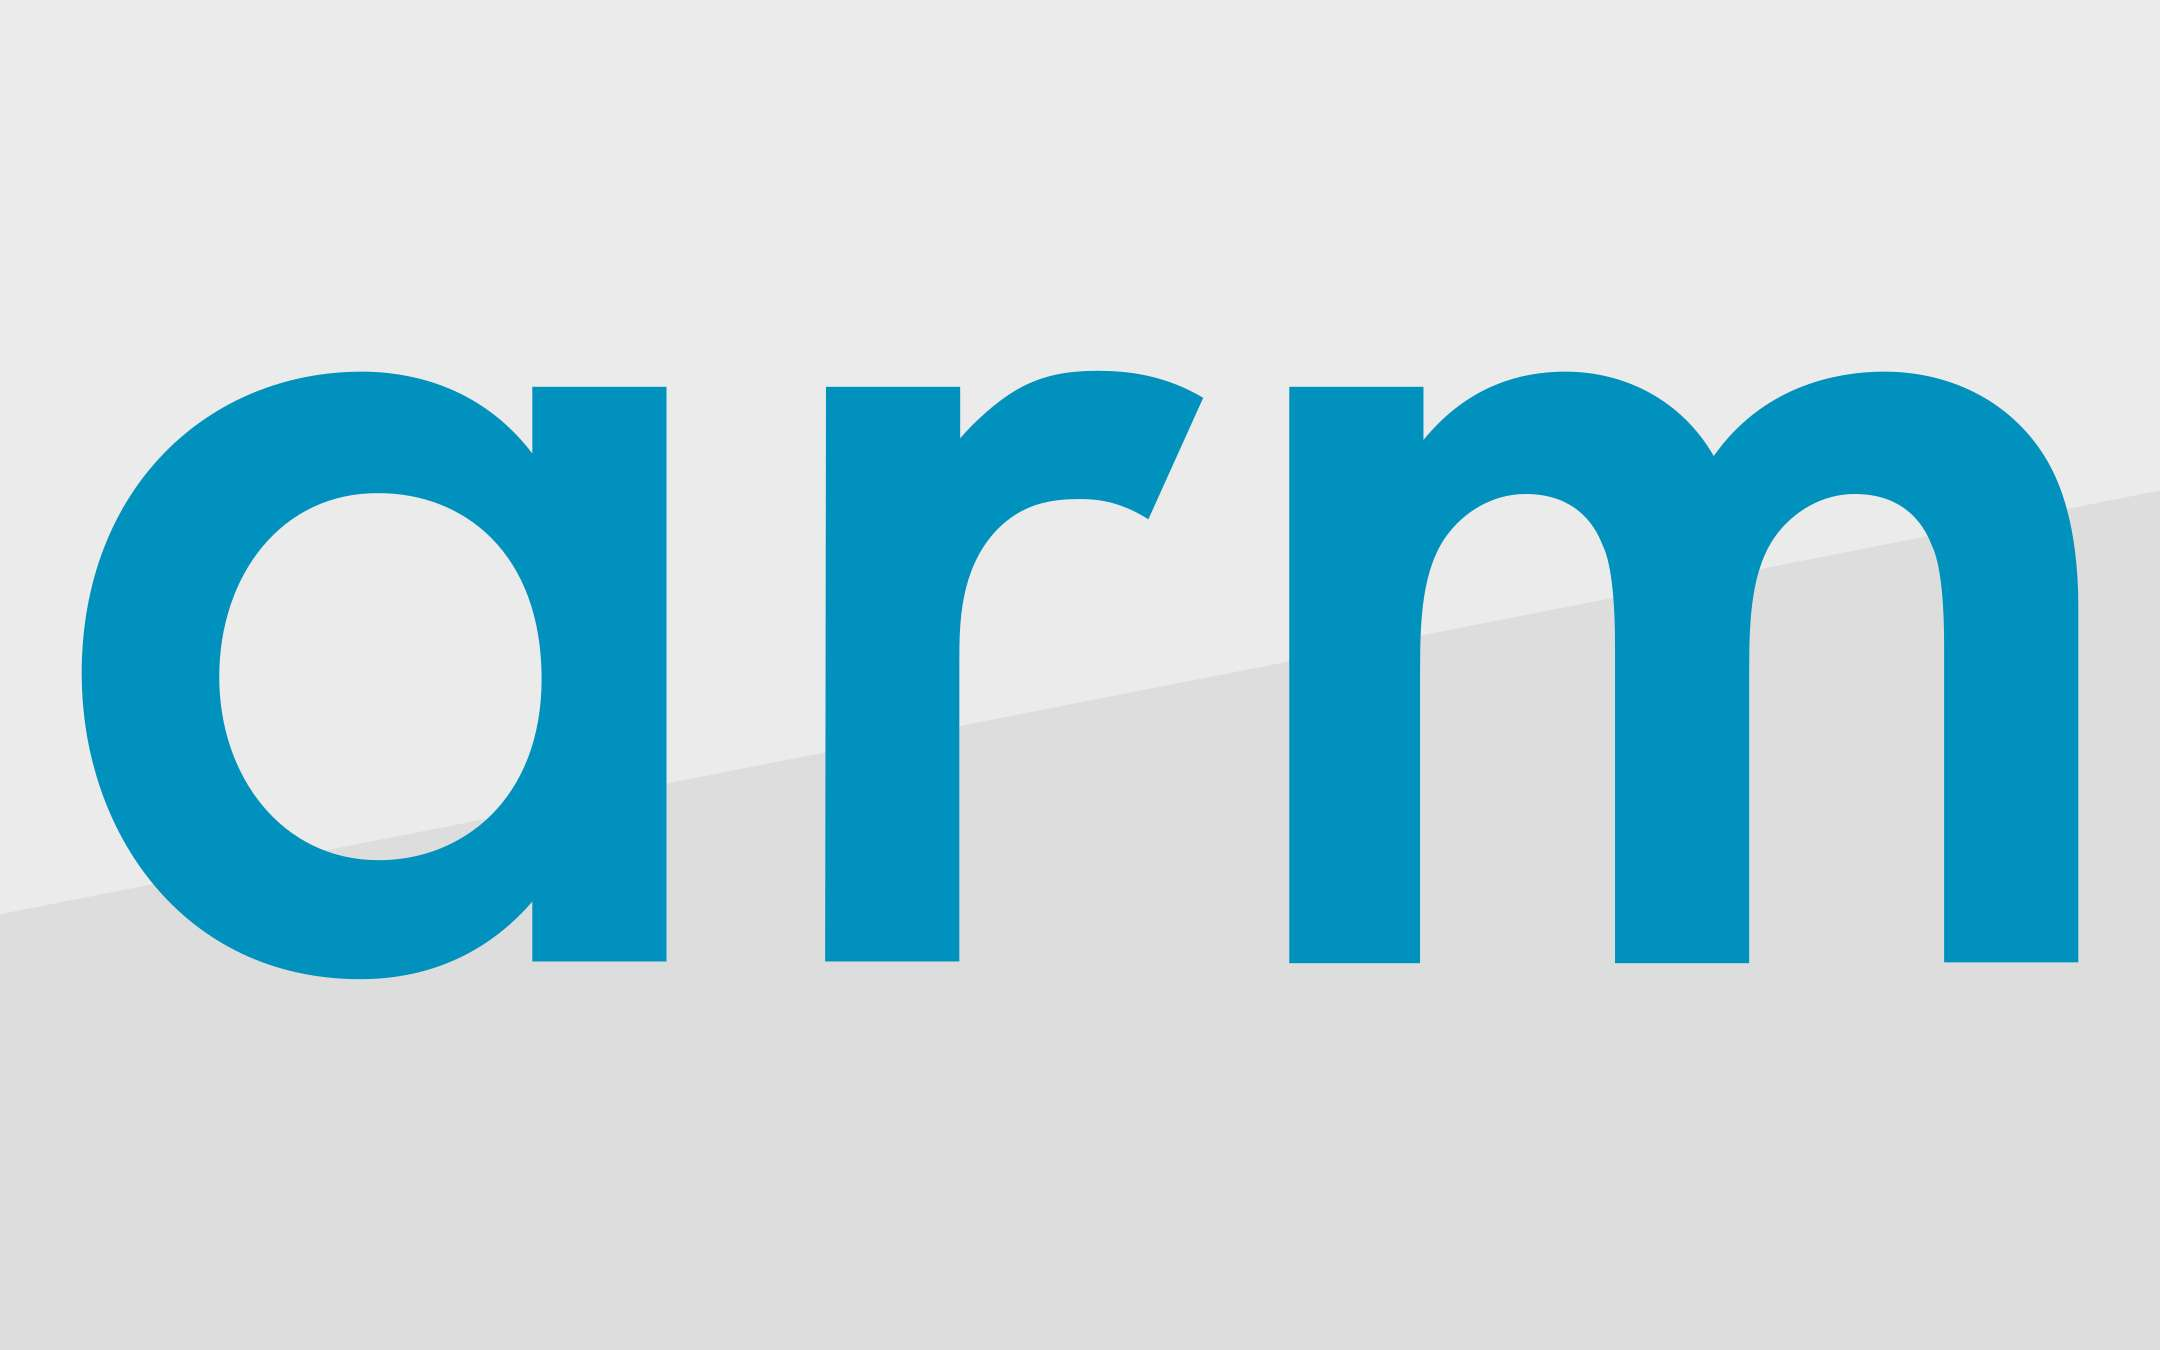 ARM introduces Cortex-A78C for the laptop segment